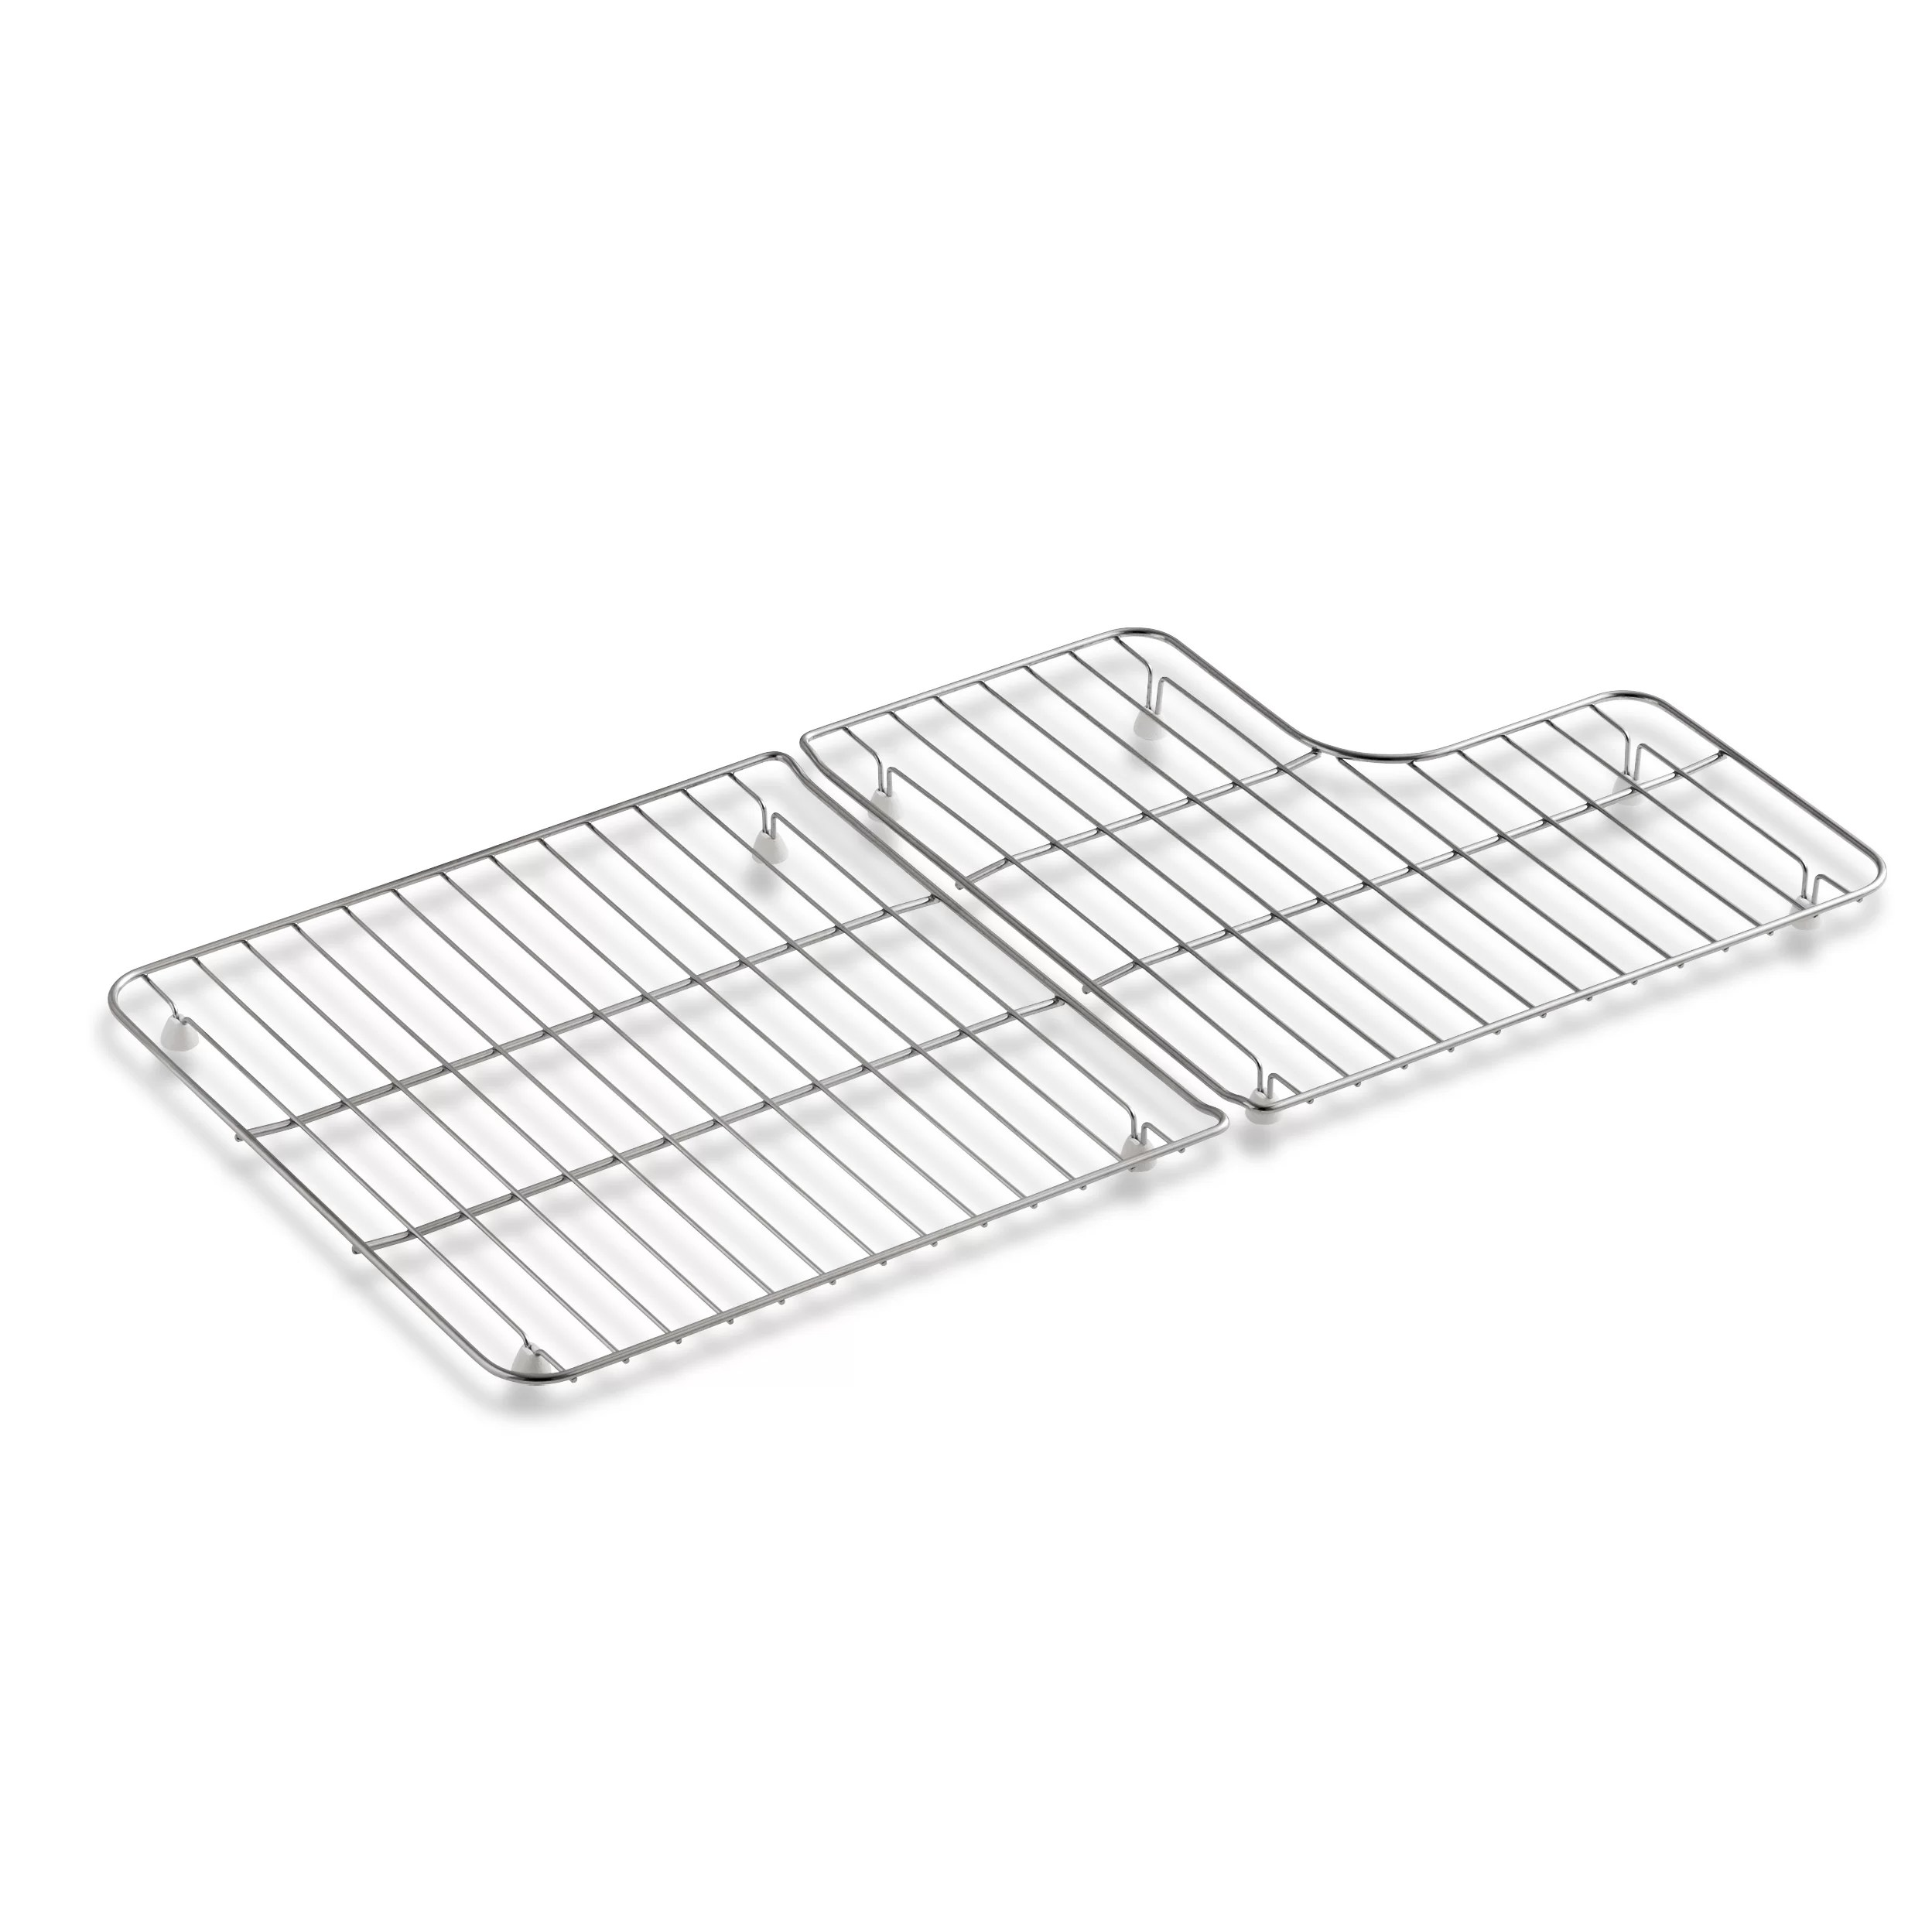 Kohler Stainless Steel Sink Racks For 36 Whitehaven